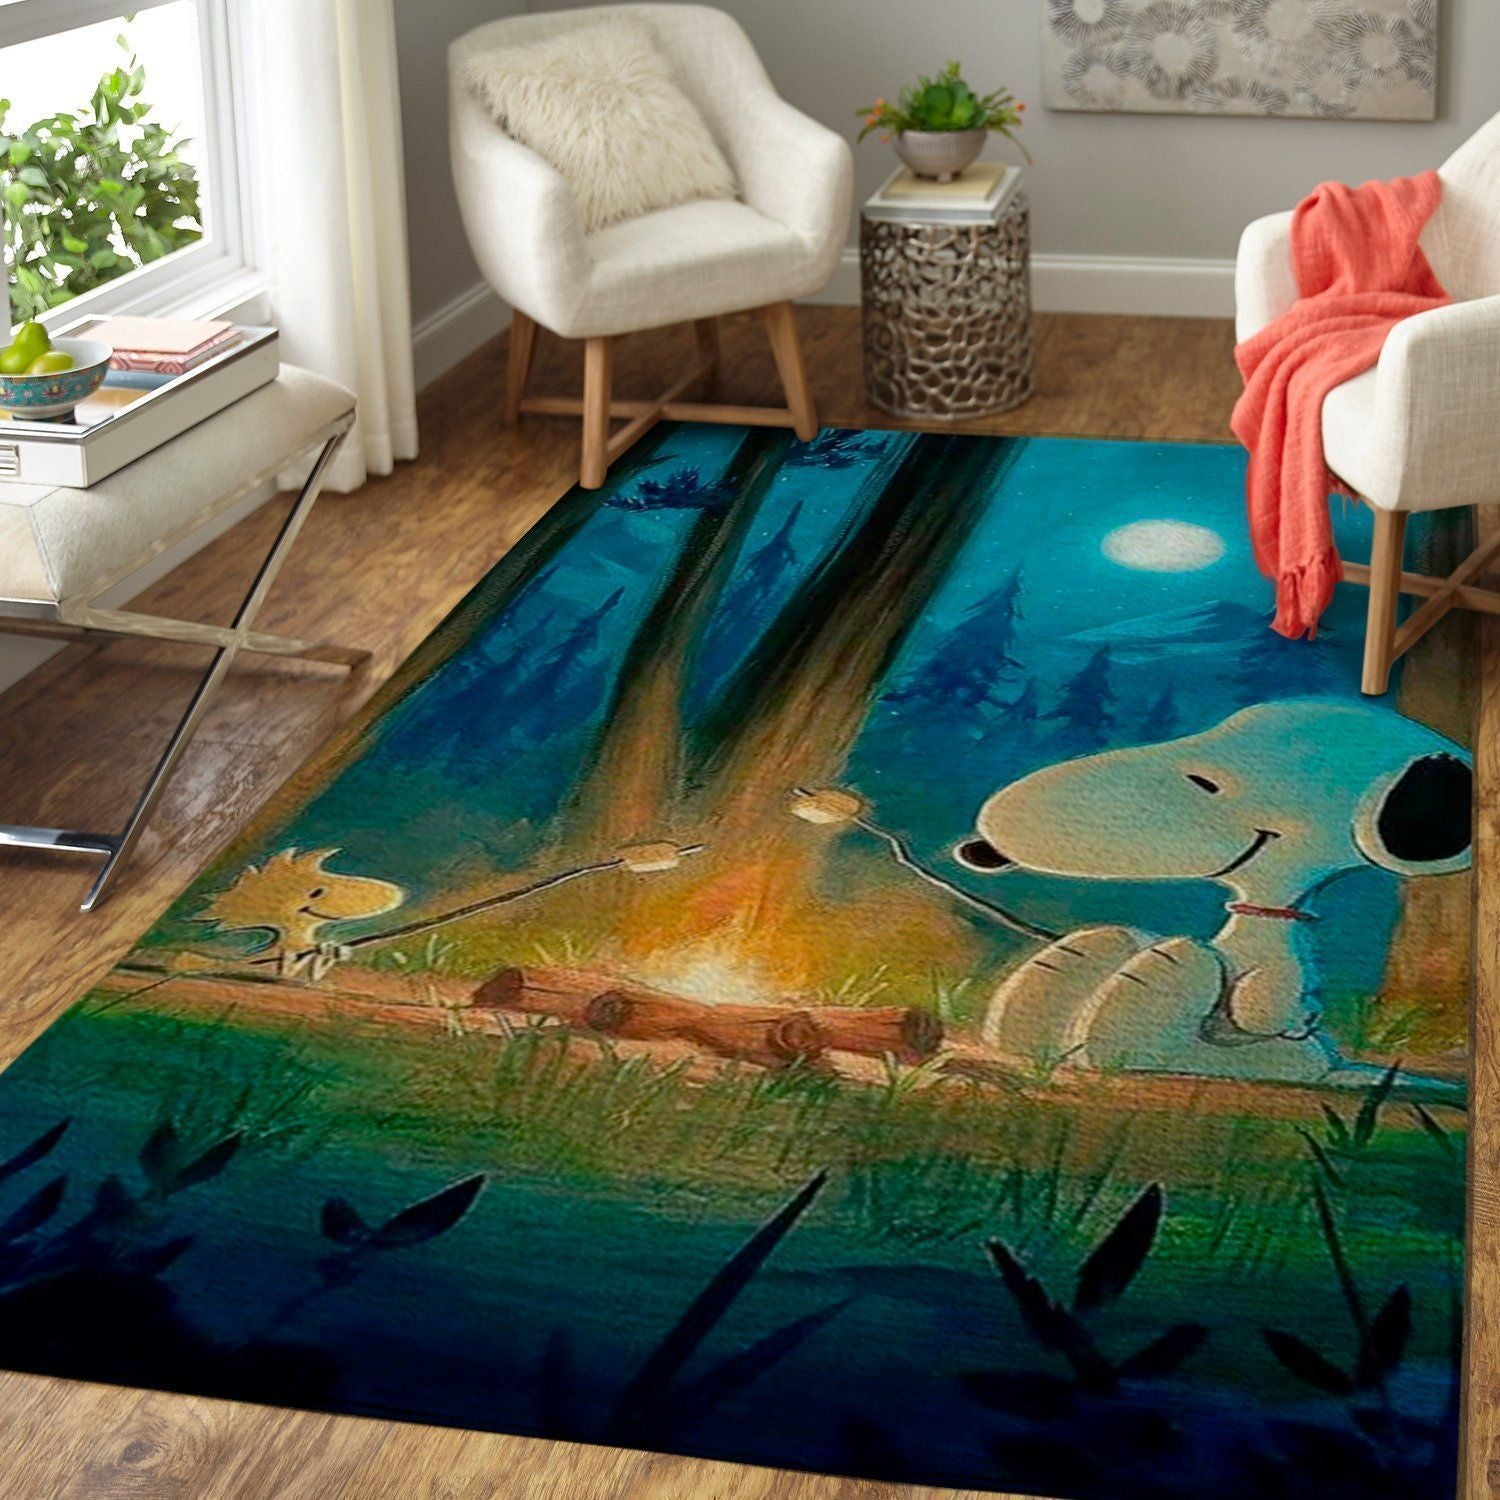 Snoopy Area Rugs, Disney Movie Living Room Carpet, Custom Floor Decor 1910218